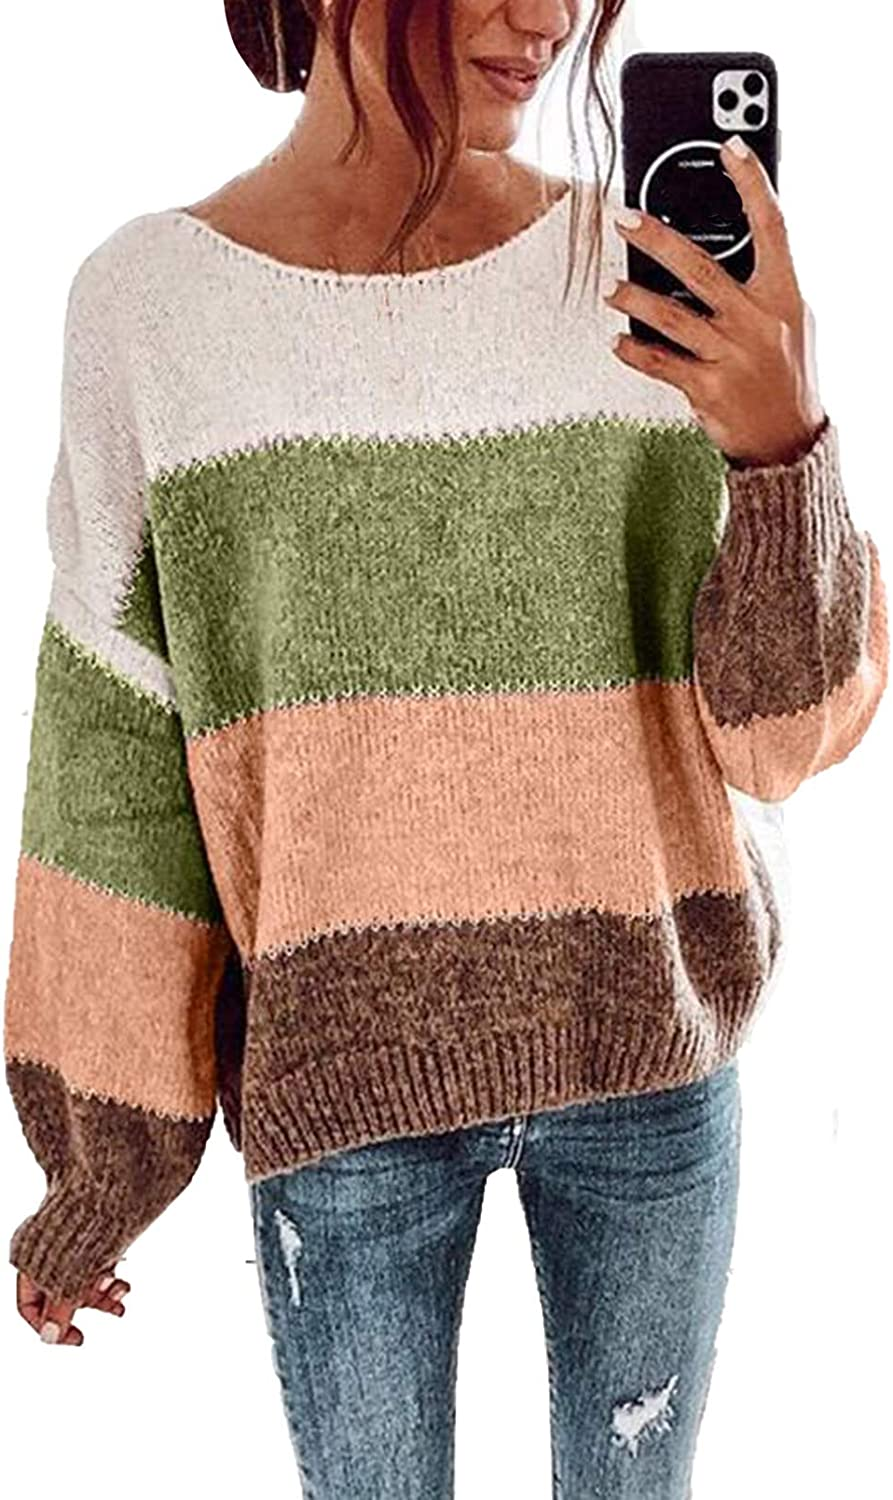 Wommen's Long Sleeve Boat Neck Colorblock Knitted Pullover Sweater Loose Jumper Sweaters